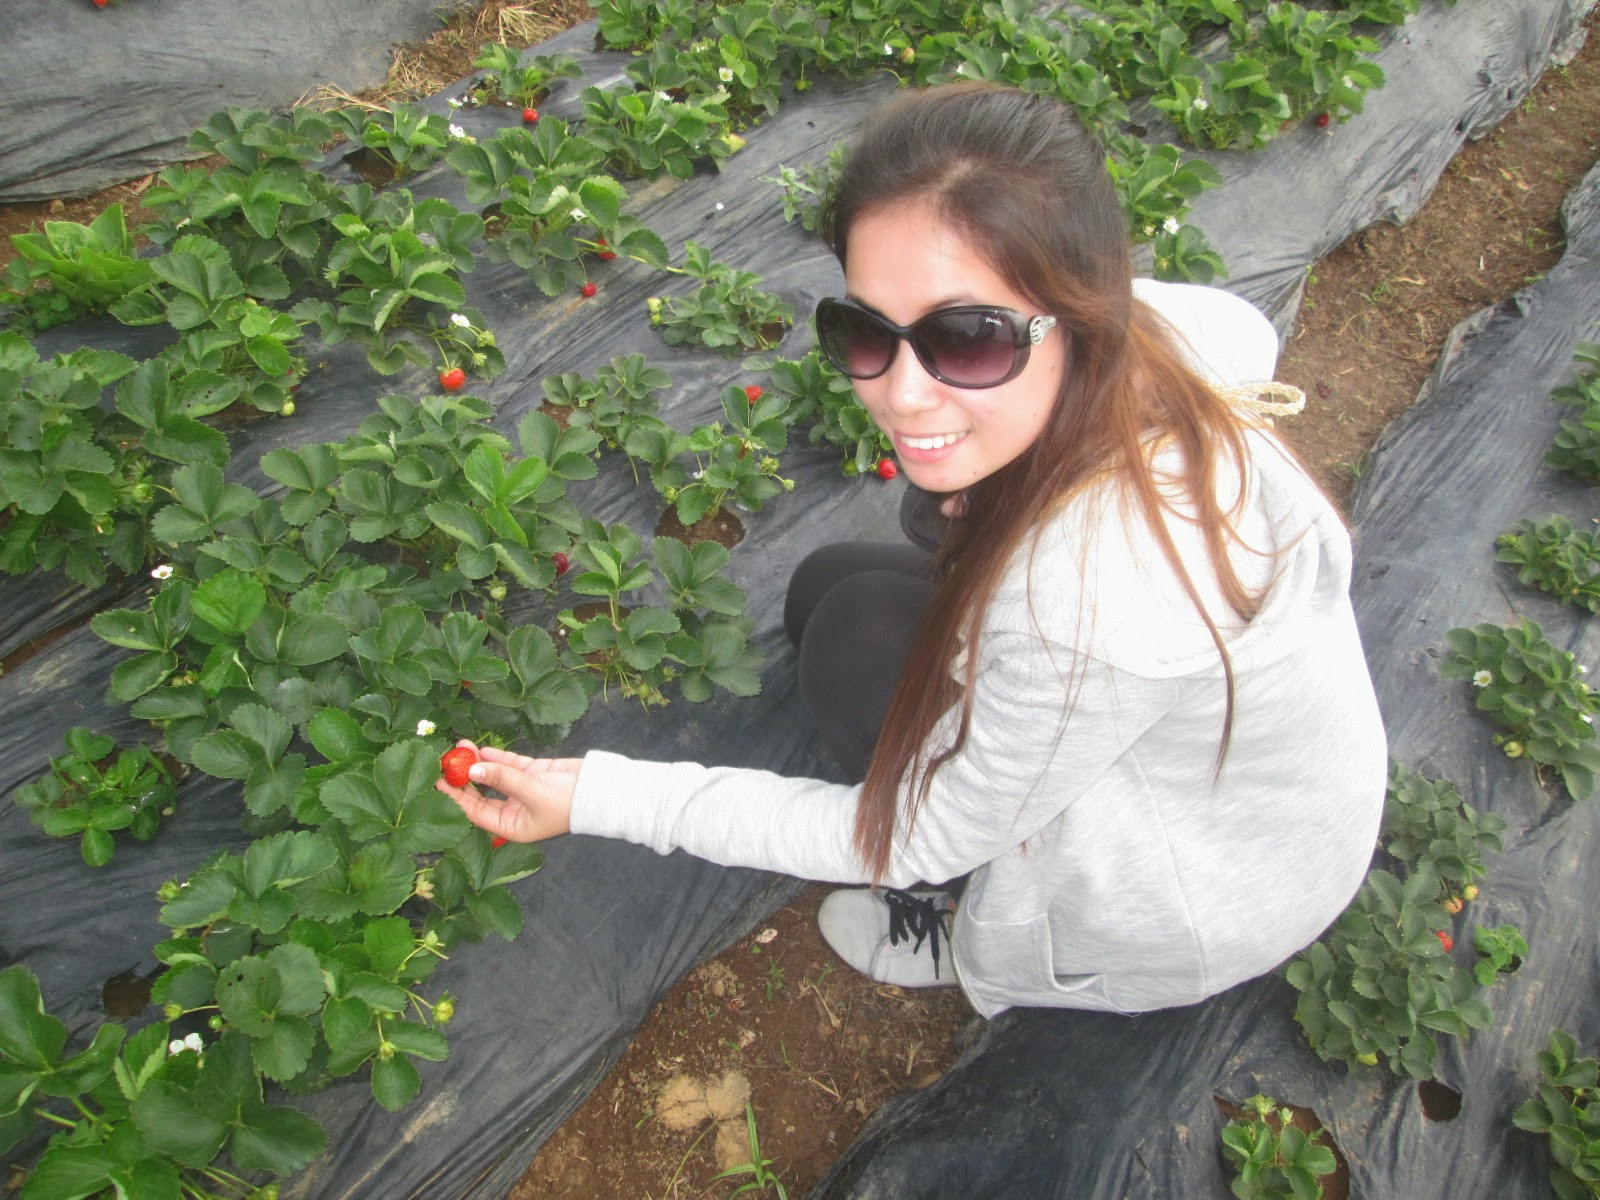 http://rhodatabisula.blogspot.com/2014/05/strawberry-farm-in-baguio-city.html